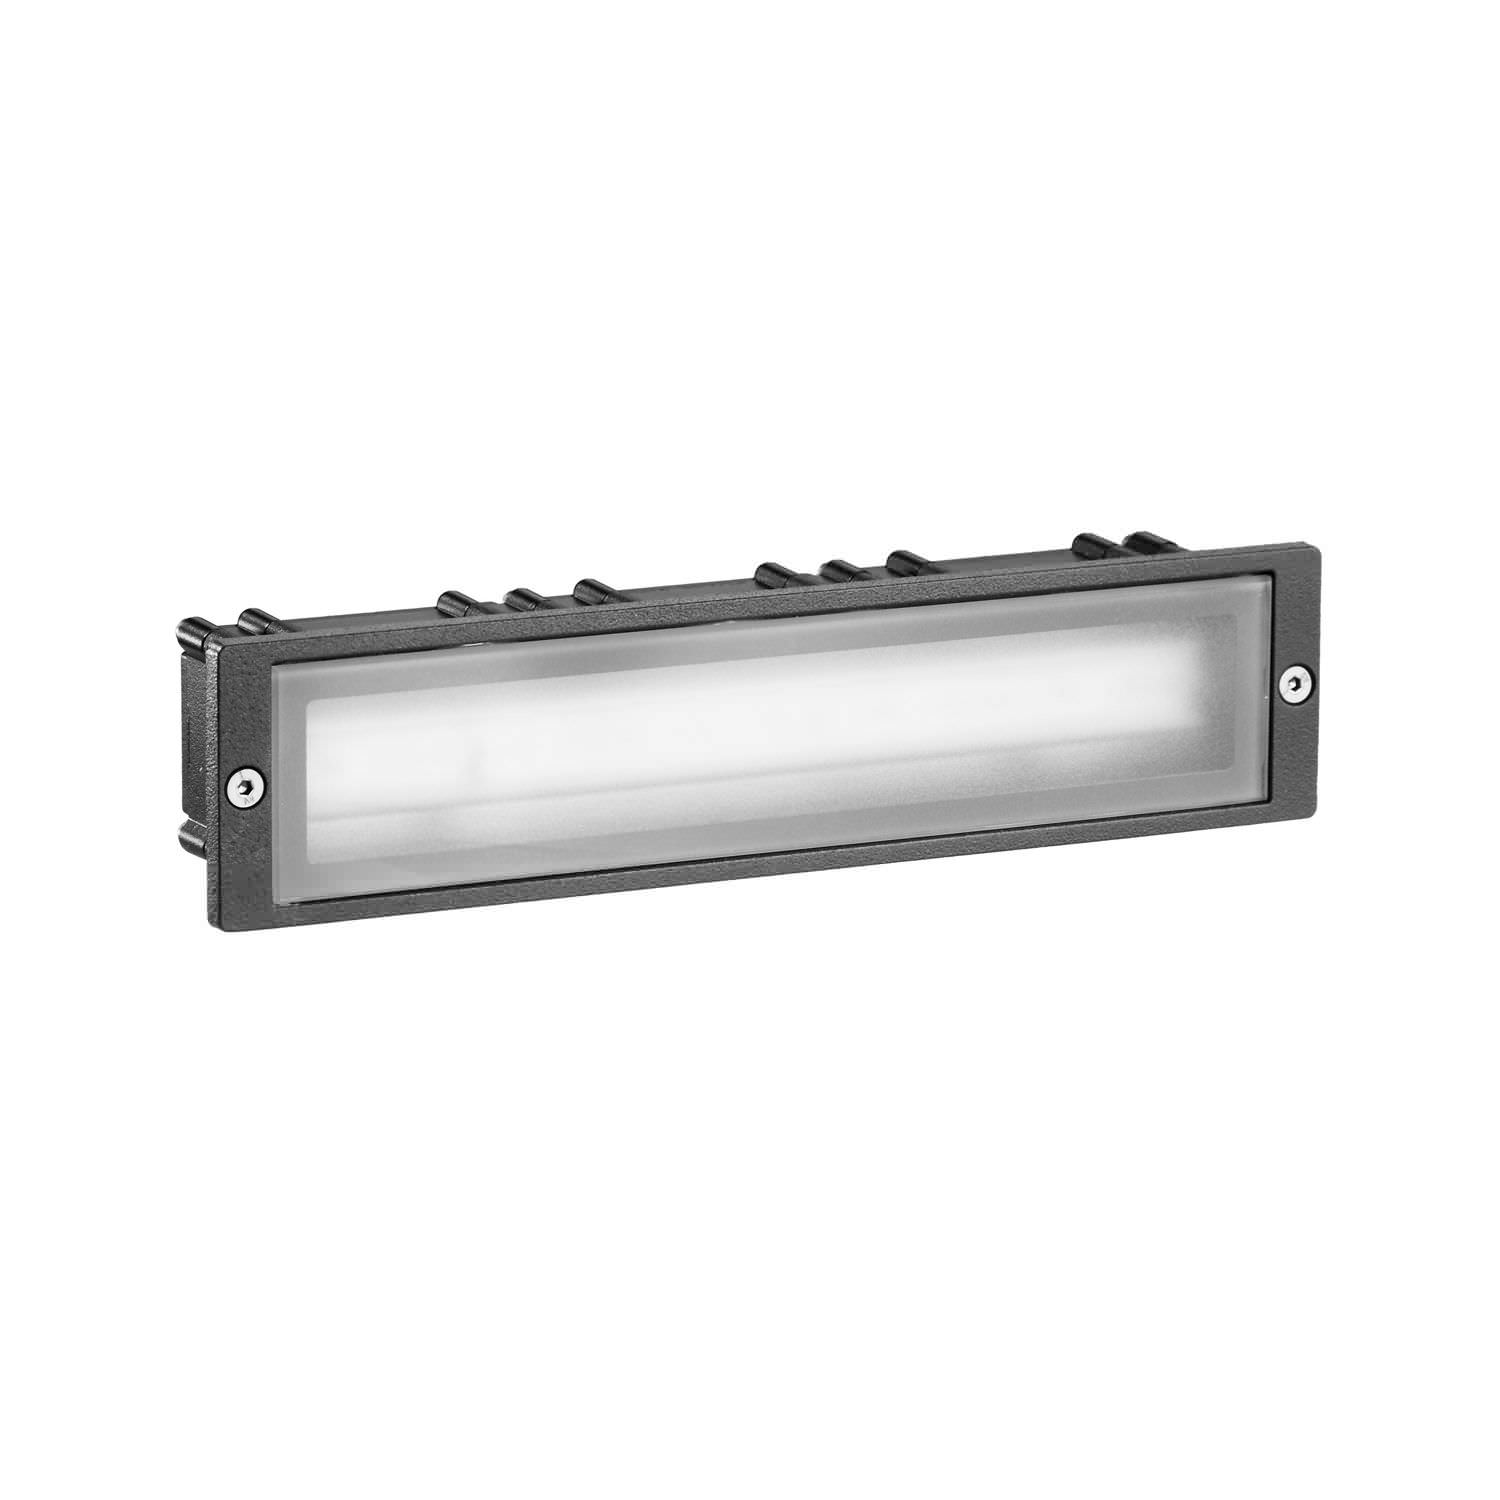 Recessed wall light fixture led compact fluorescent linear recessed wall light fixture led compact fluorescent linear camilla arubaitofo Image collections